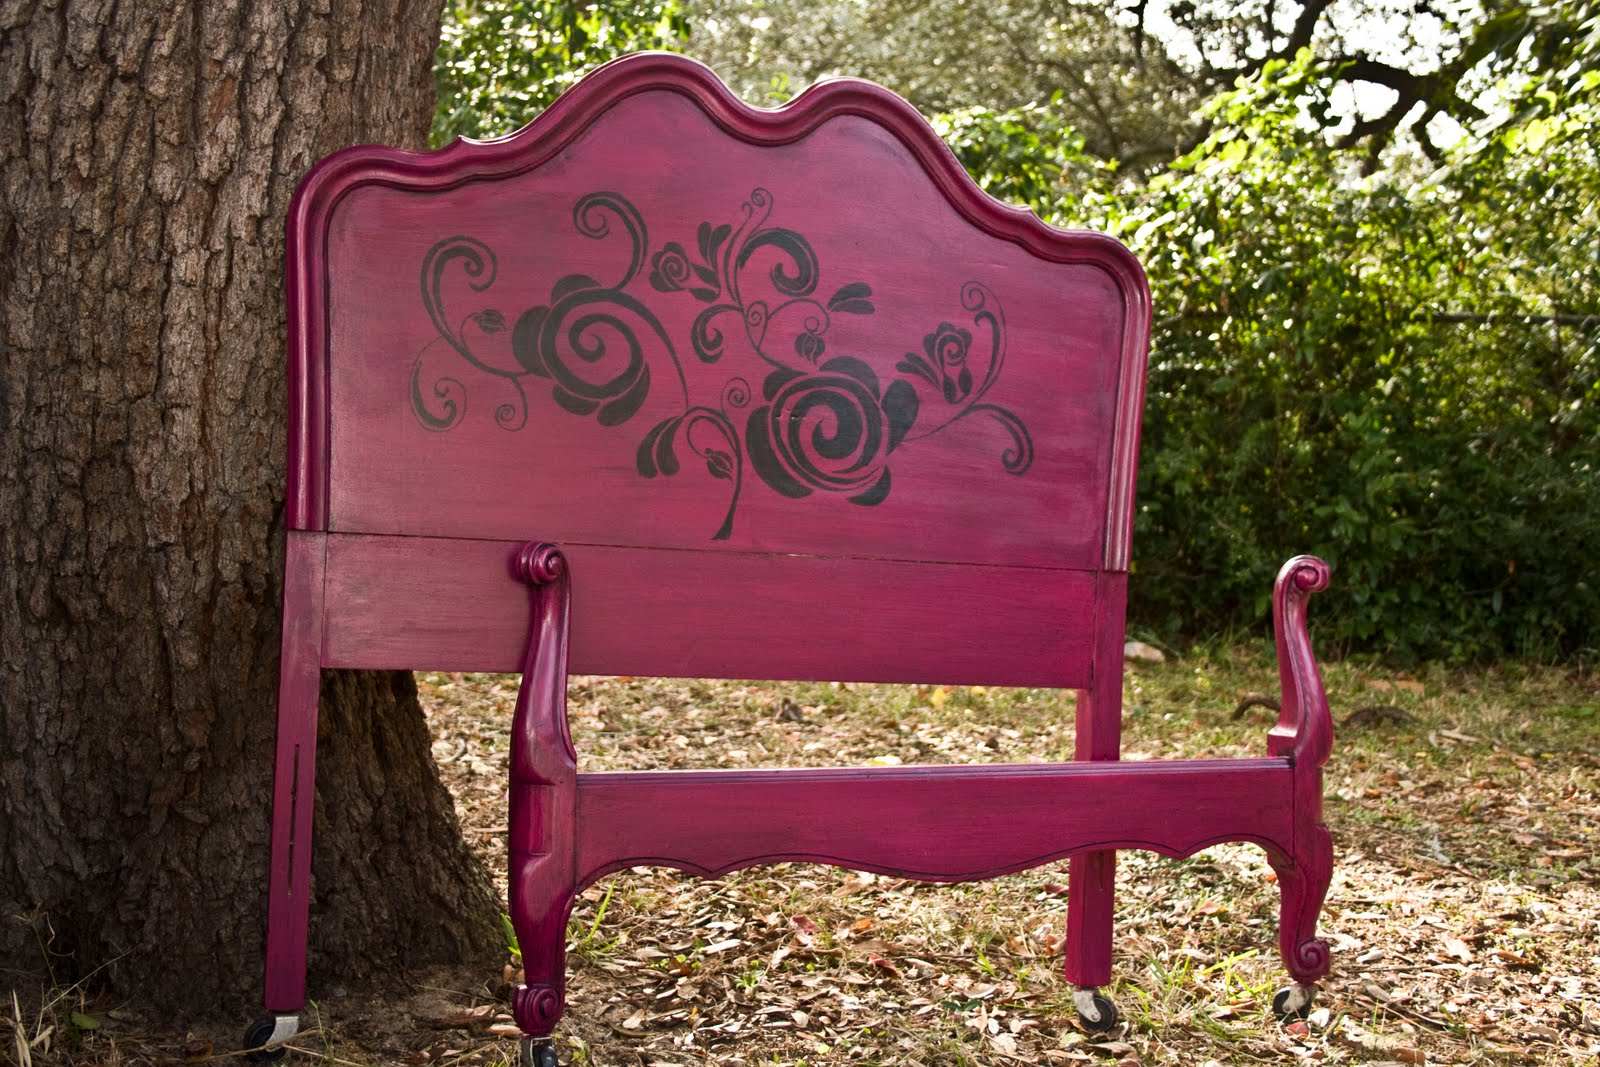 Modernly Shabby Chic Furniture: Raspberry and Black Whimsical Twin ...